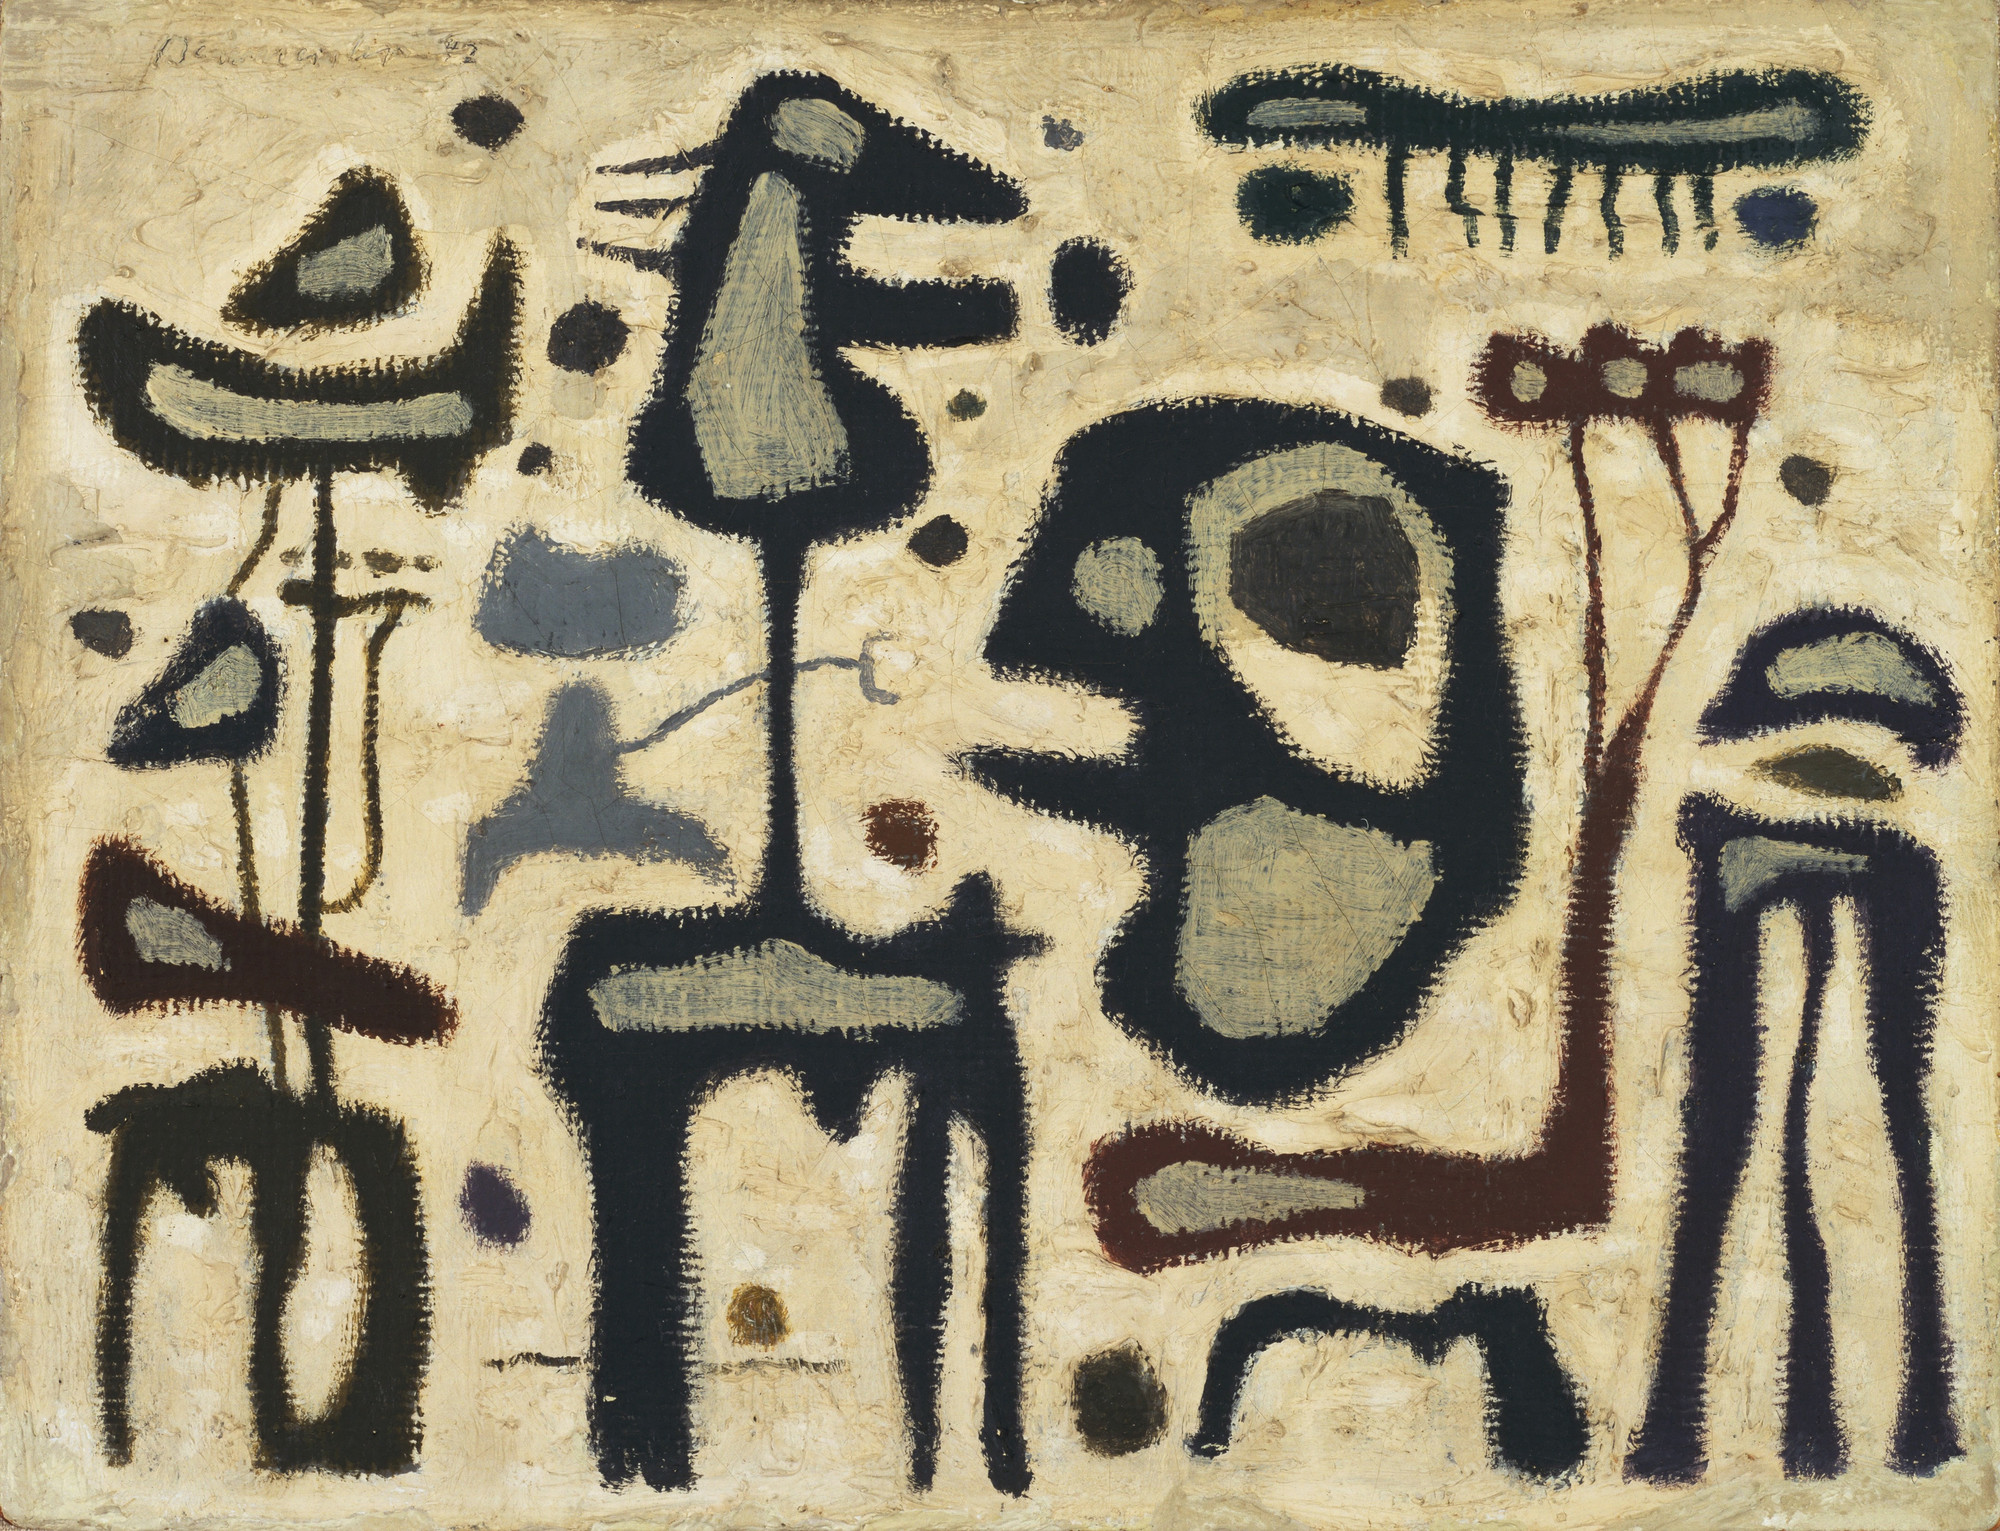 Willi Baumeister. African Play, IV. 1942